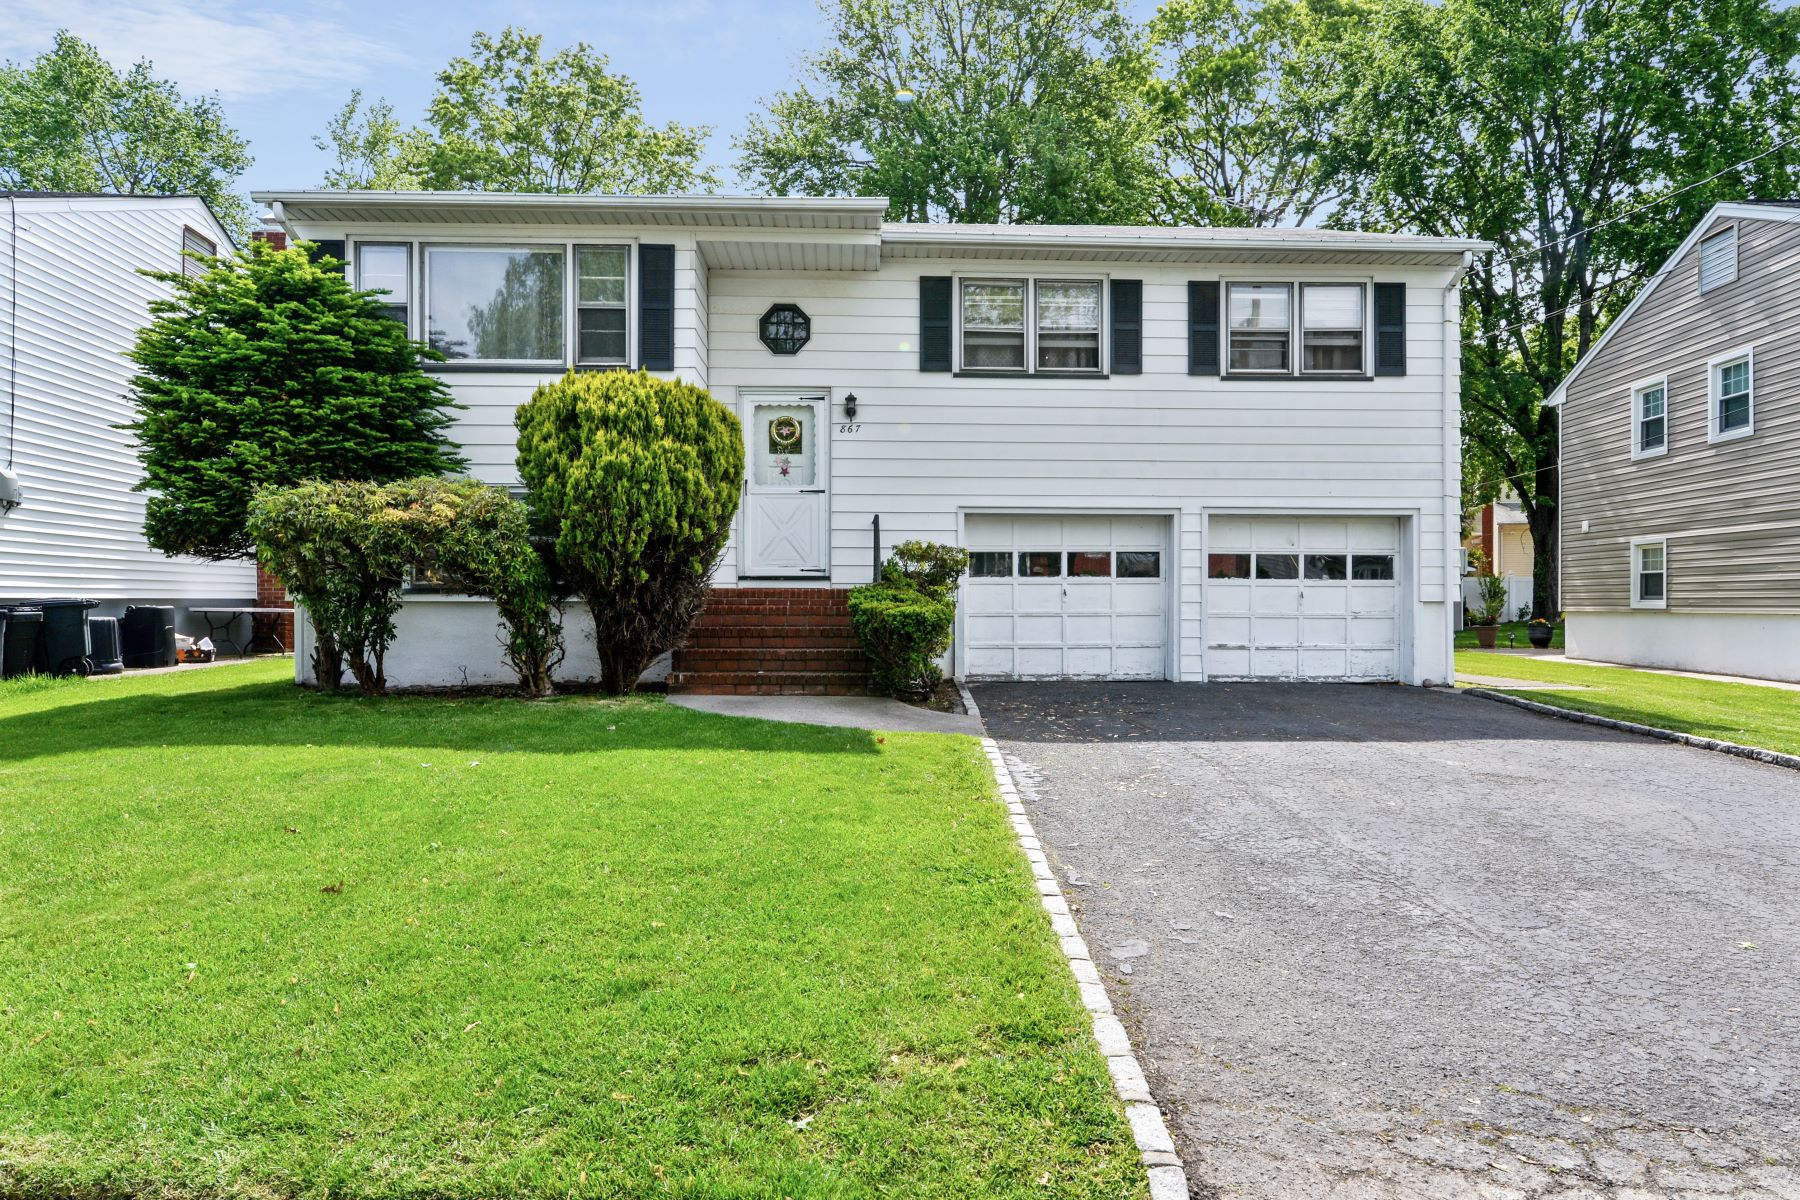 Single Family Homes for Sale at Spacious Bi-Level 867 Sheridan Street Union, New Jersey 07083 United States